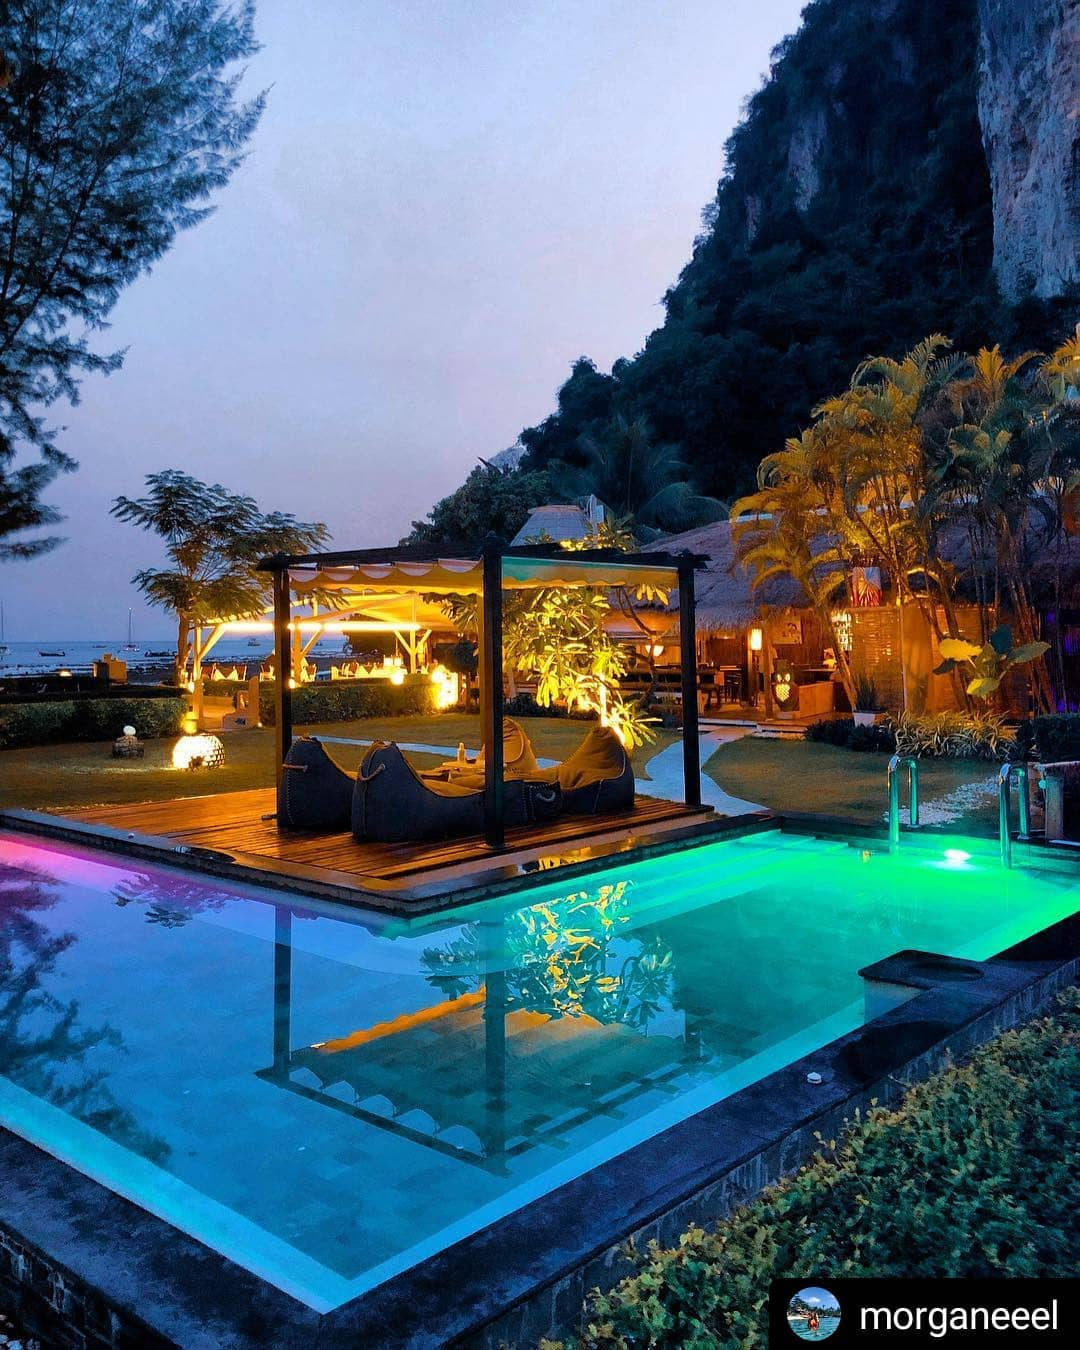 Phi Phi Relax Beach Resort: Another Way To Relax. Une Autre